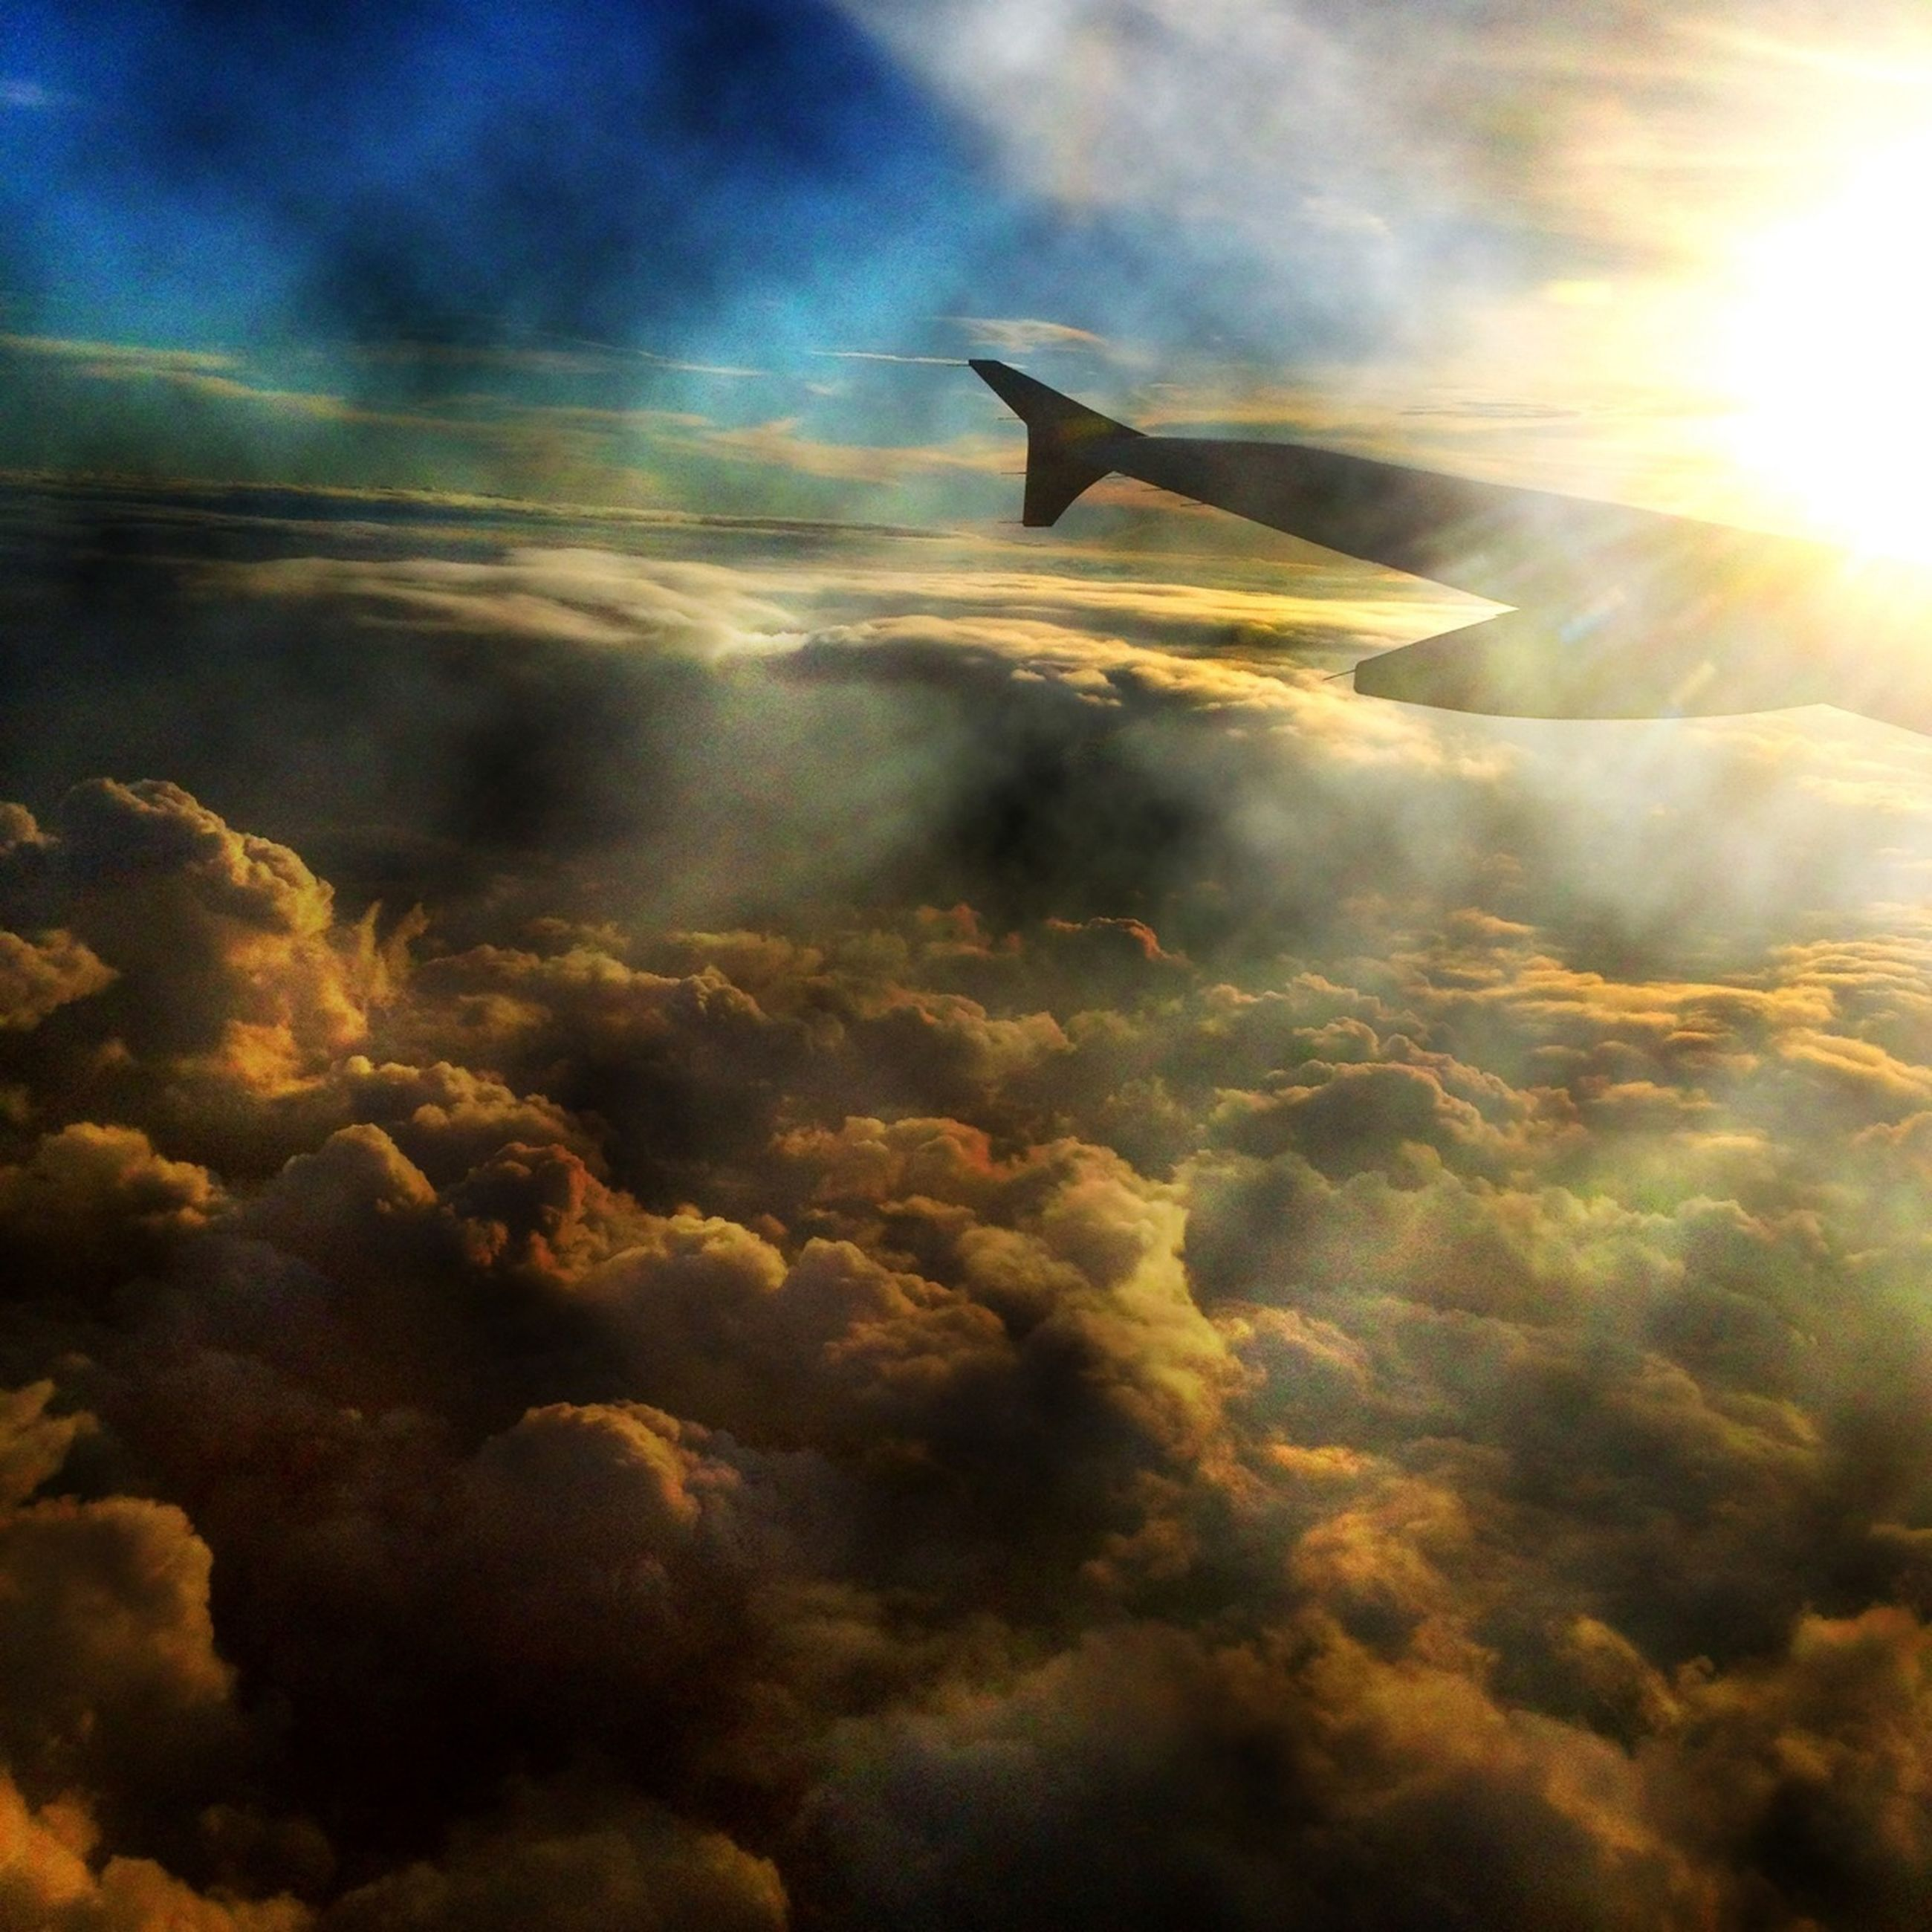 sky, airplane, cloud - sky, aircraft wing, flying, cloudscape, beauty in nature, air vehicle, scenics, aerial view, nature, sunset, cloud, sun, cloudy, tranquility, mode of transport, transportation, sunbeam, tranquil scene